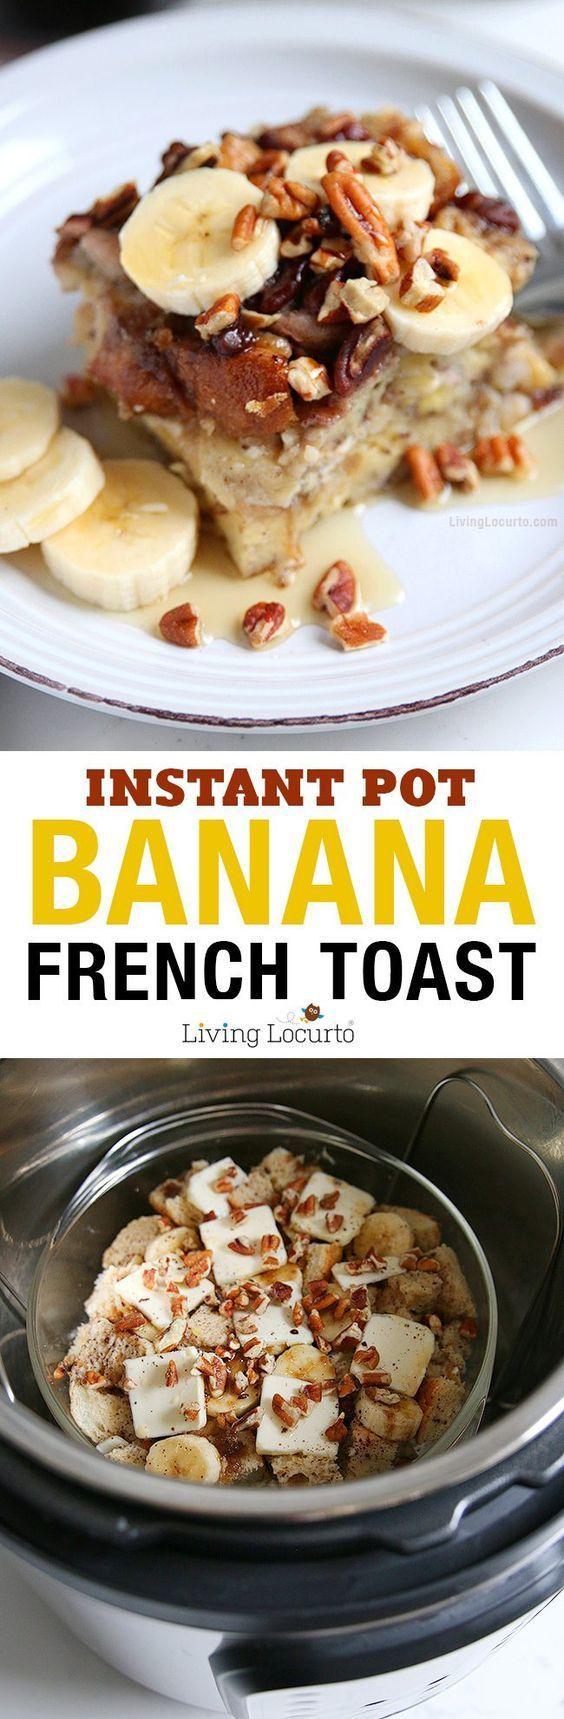 9841 best french food recipes images on pinterest french cooking easy one pot meal instant pot banana french toast recipe how to make french forumfinder Choice Image